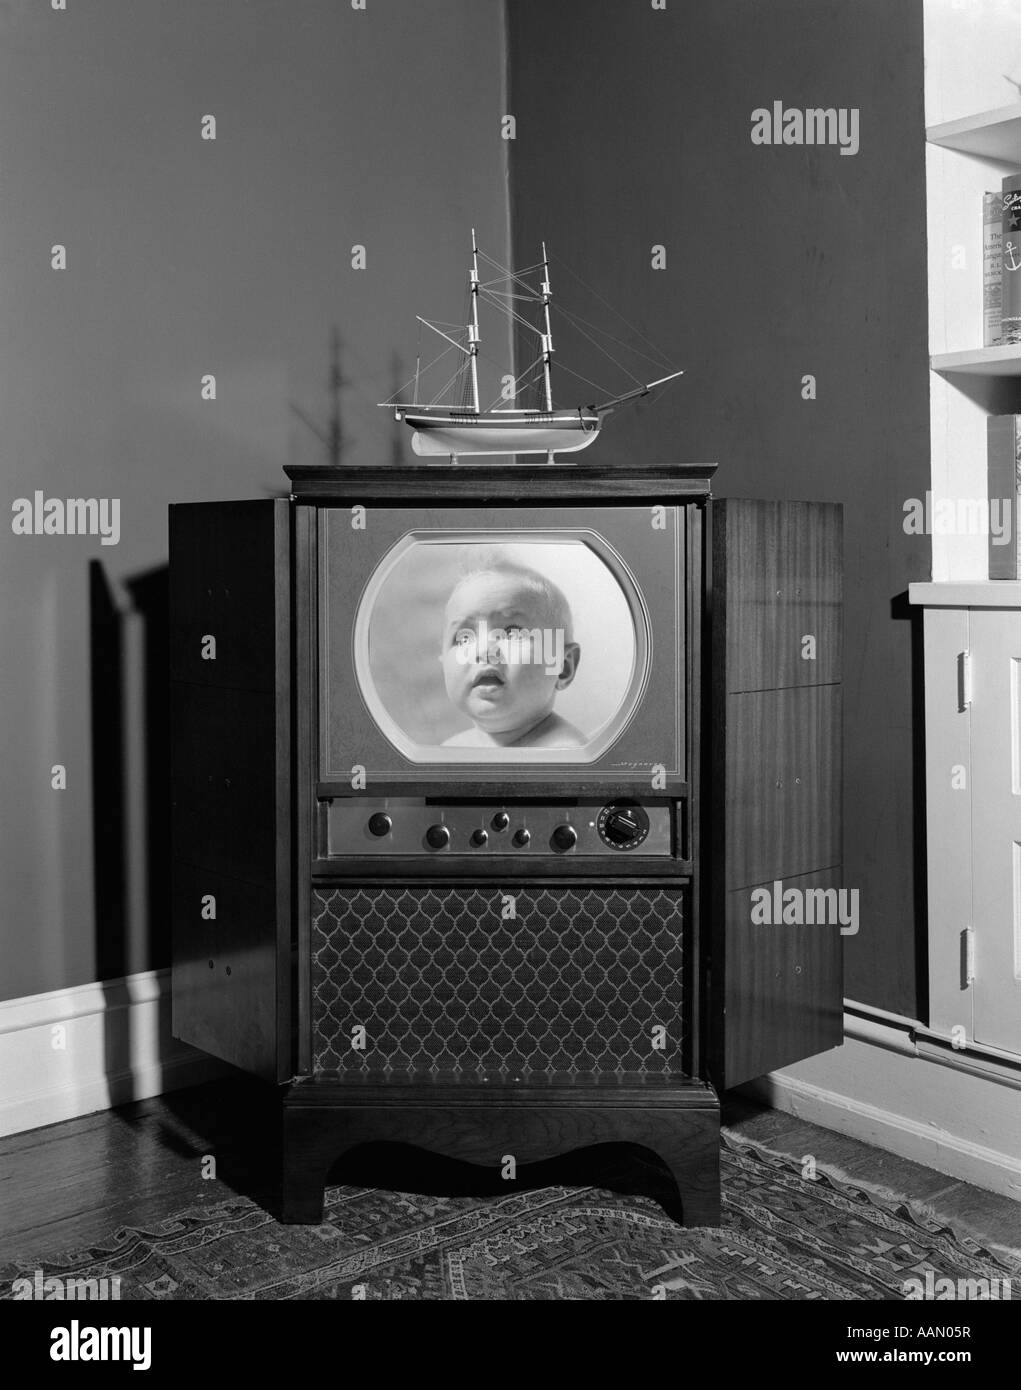 1940s 1950s CONSOLE BLACK AND WHITE TELEVISION SET WITH MANY DIALS KNOBS ROOM INTERIOR WITH MODEL SHIP AND ORIENTAL - Stock Image